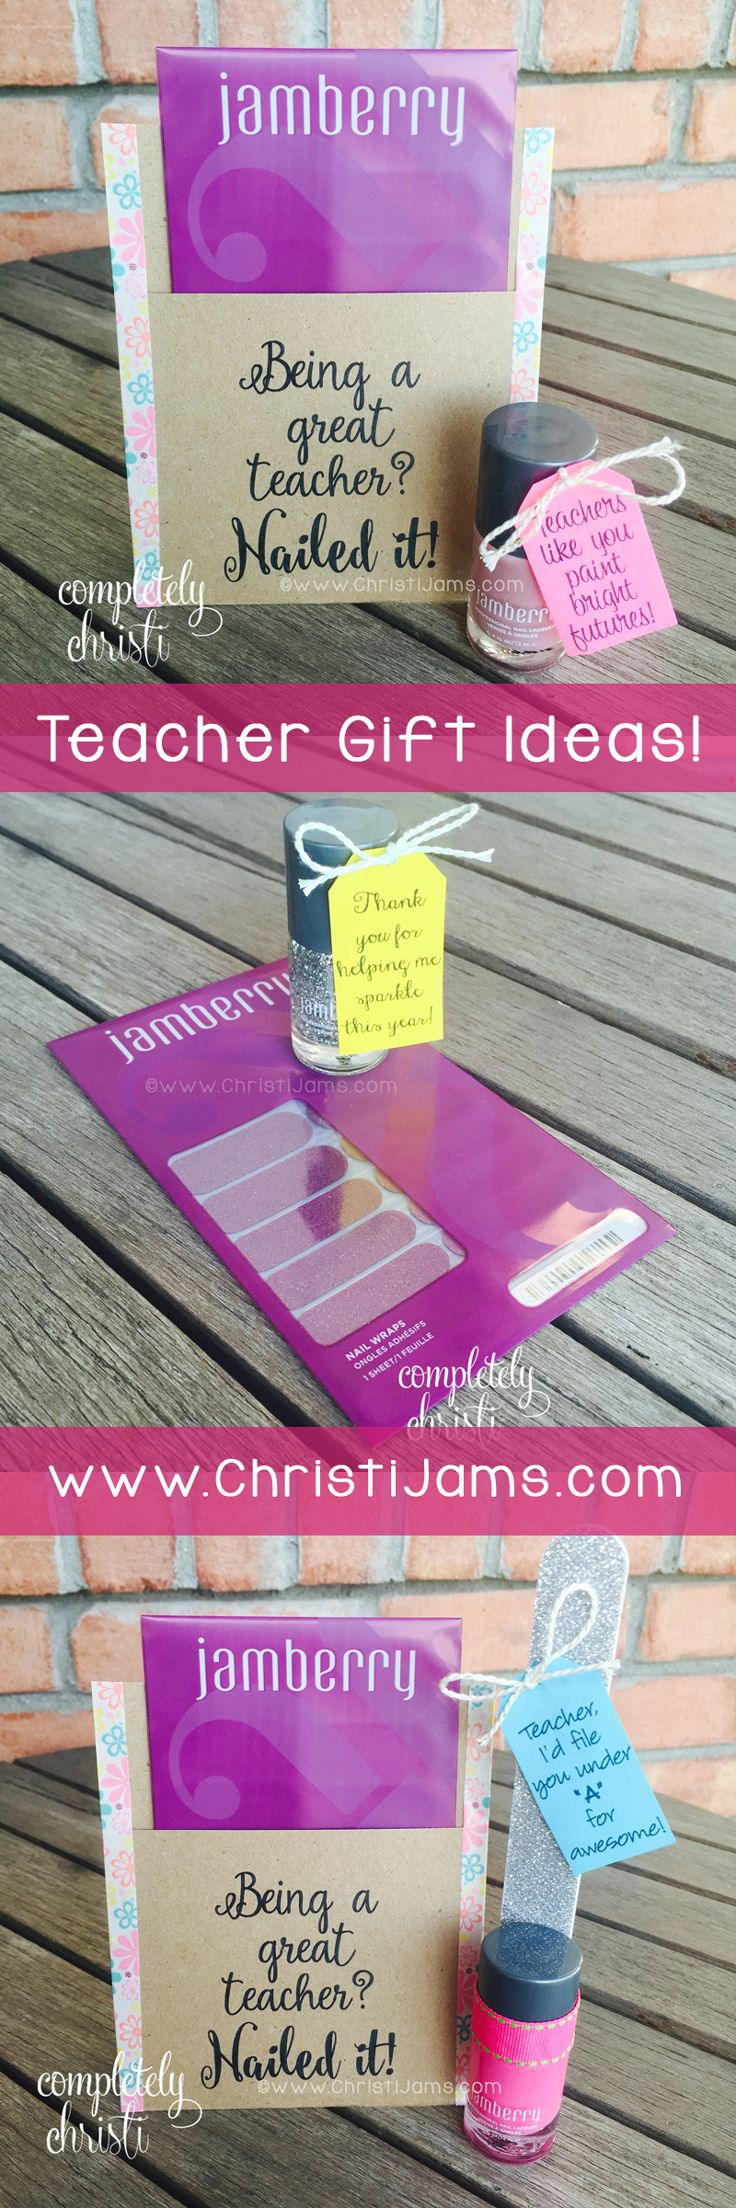 Teacher Appreciation Gift Idea: Cute gift tag ideas for nail polish or Jamberry…